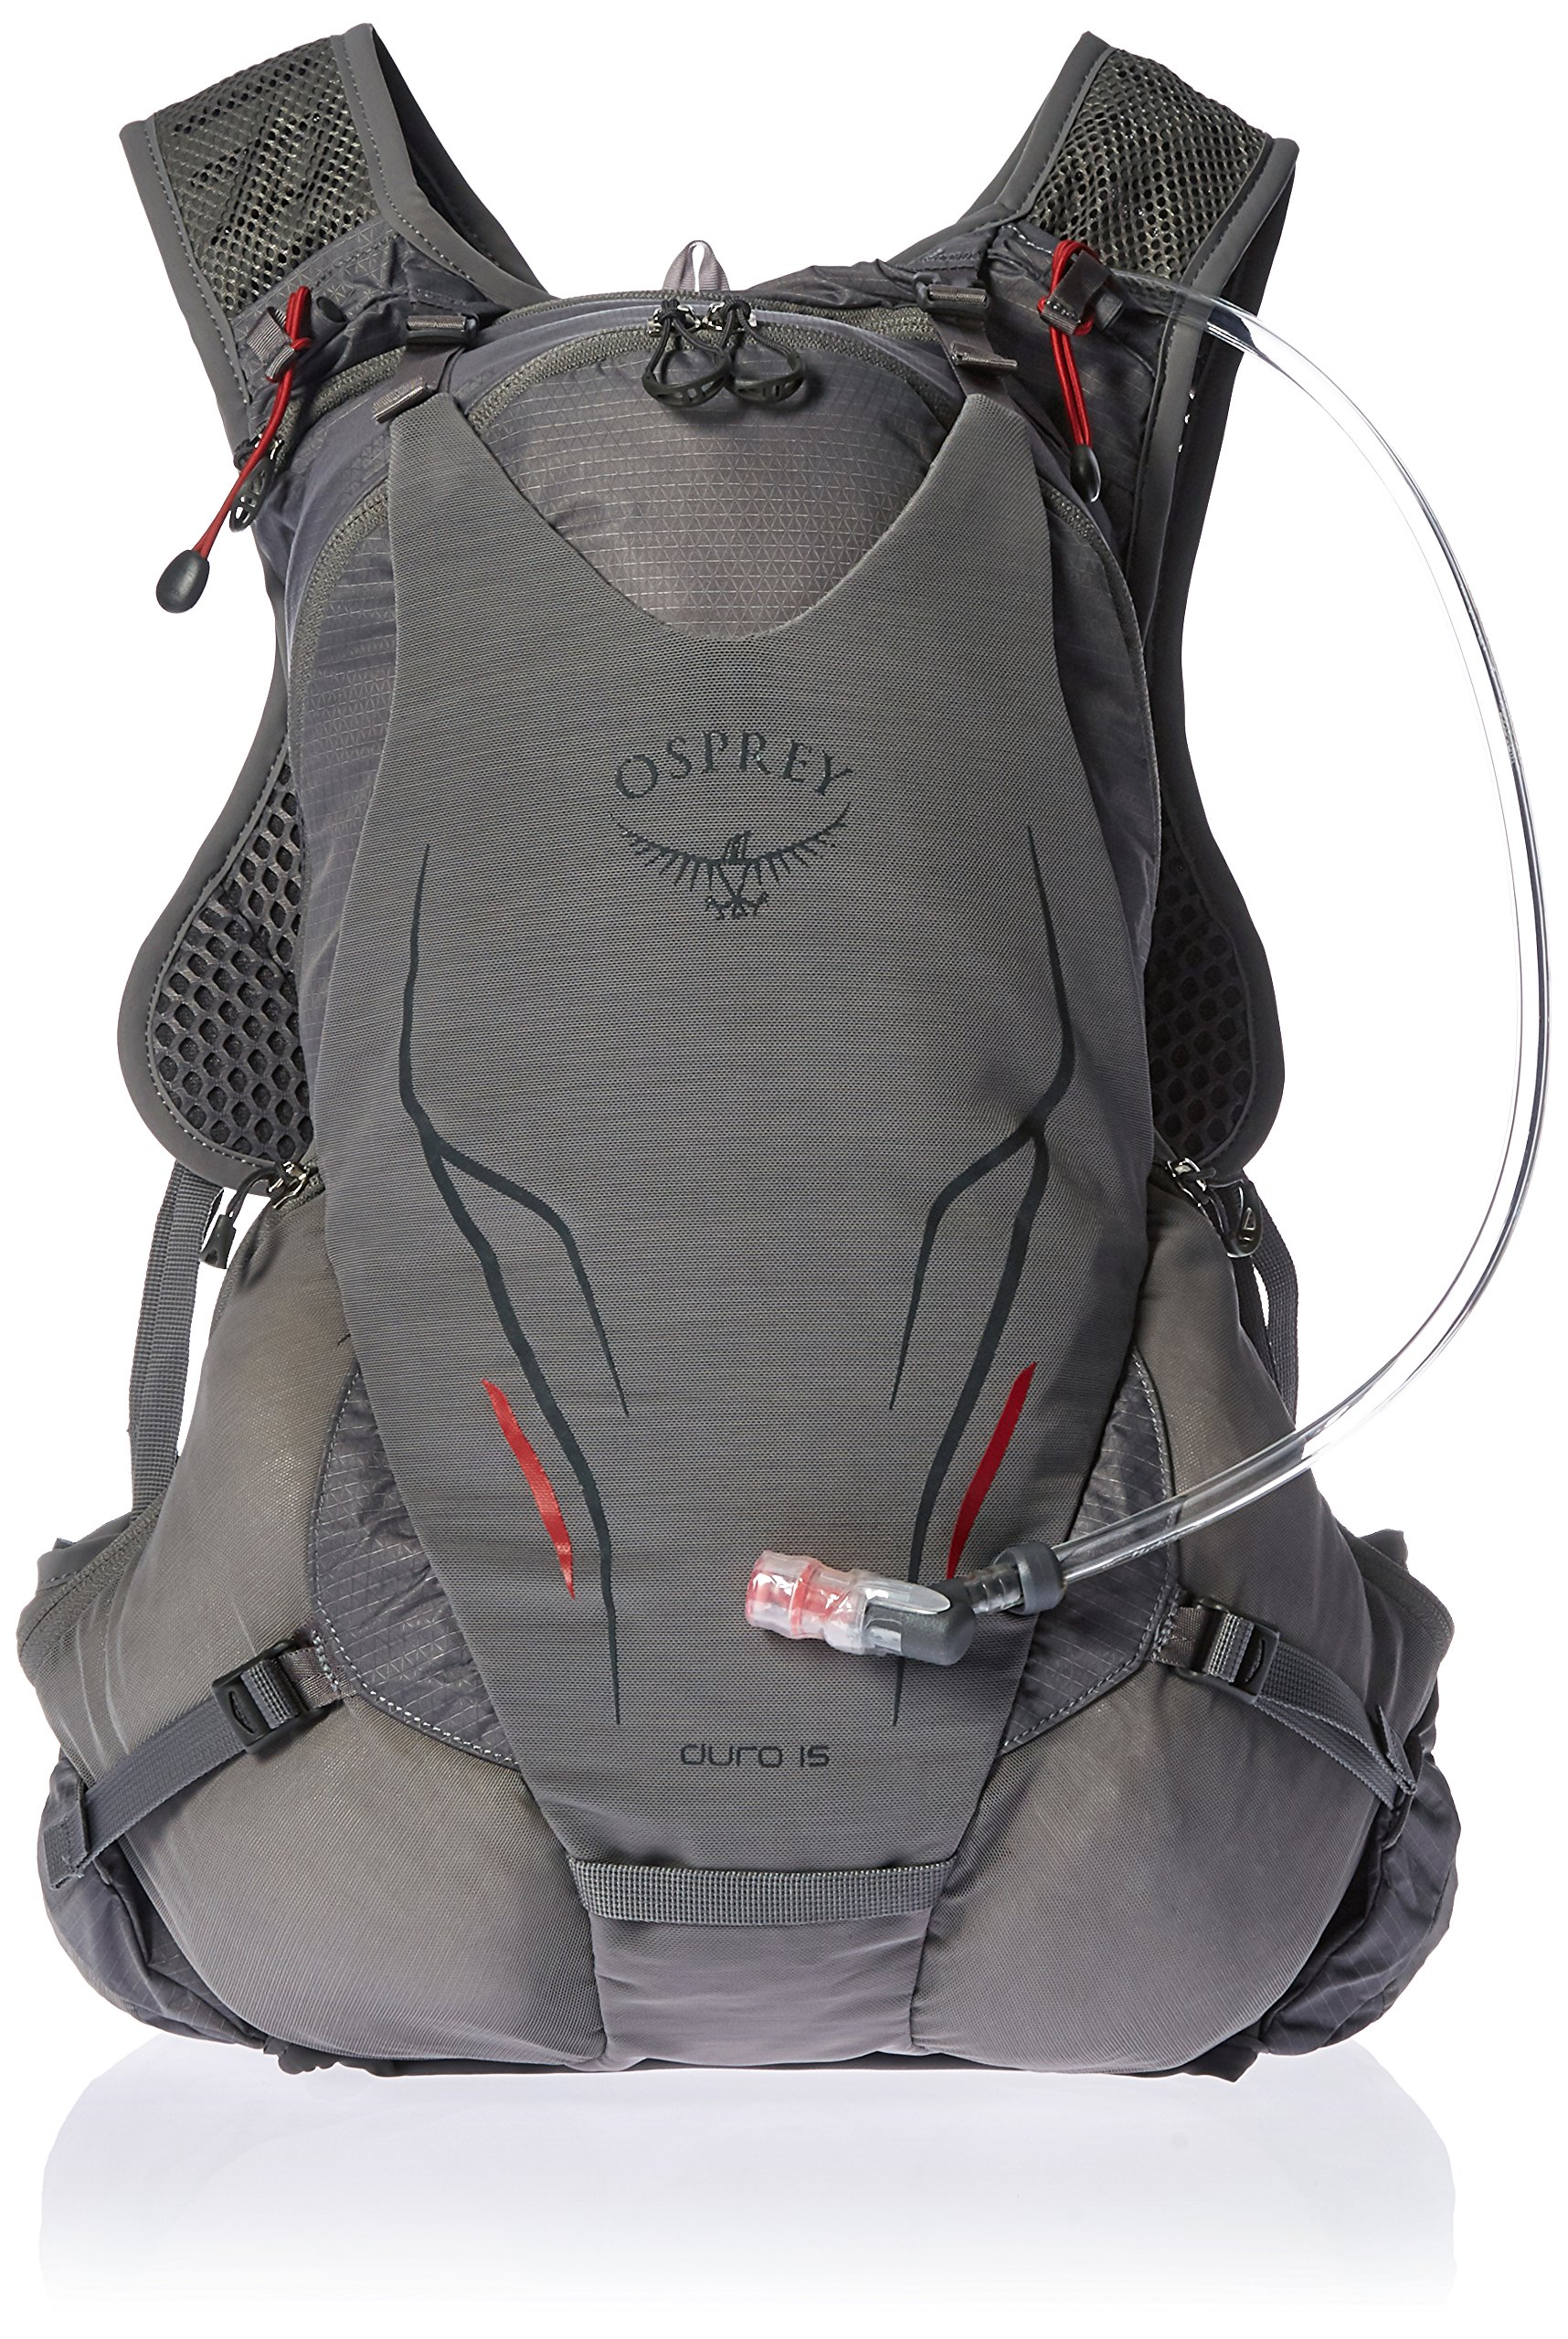 Osprey Packs Duro 15 Hydration Pack, Silver Squall, S/M, Small/Medium